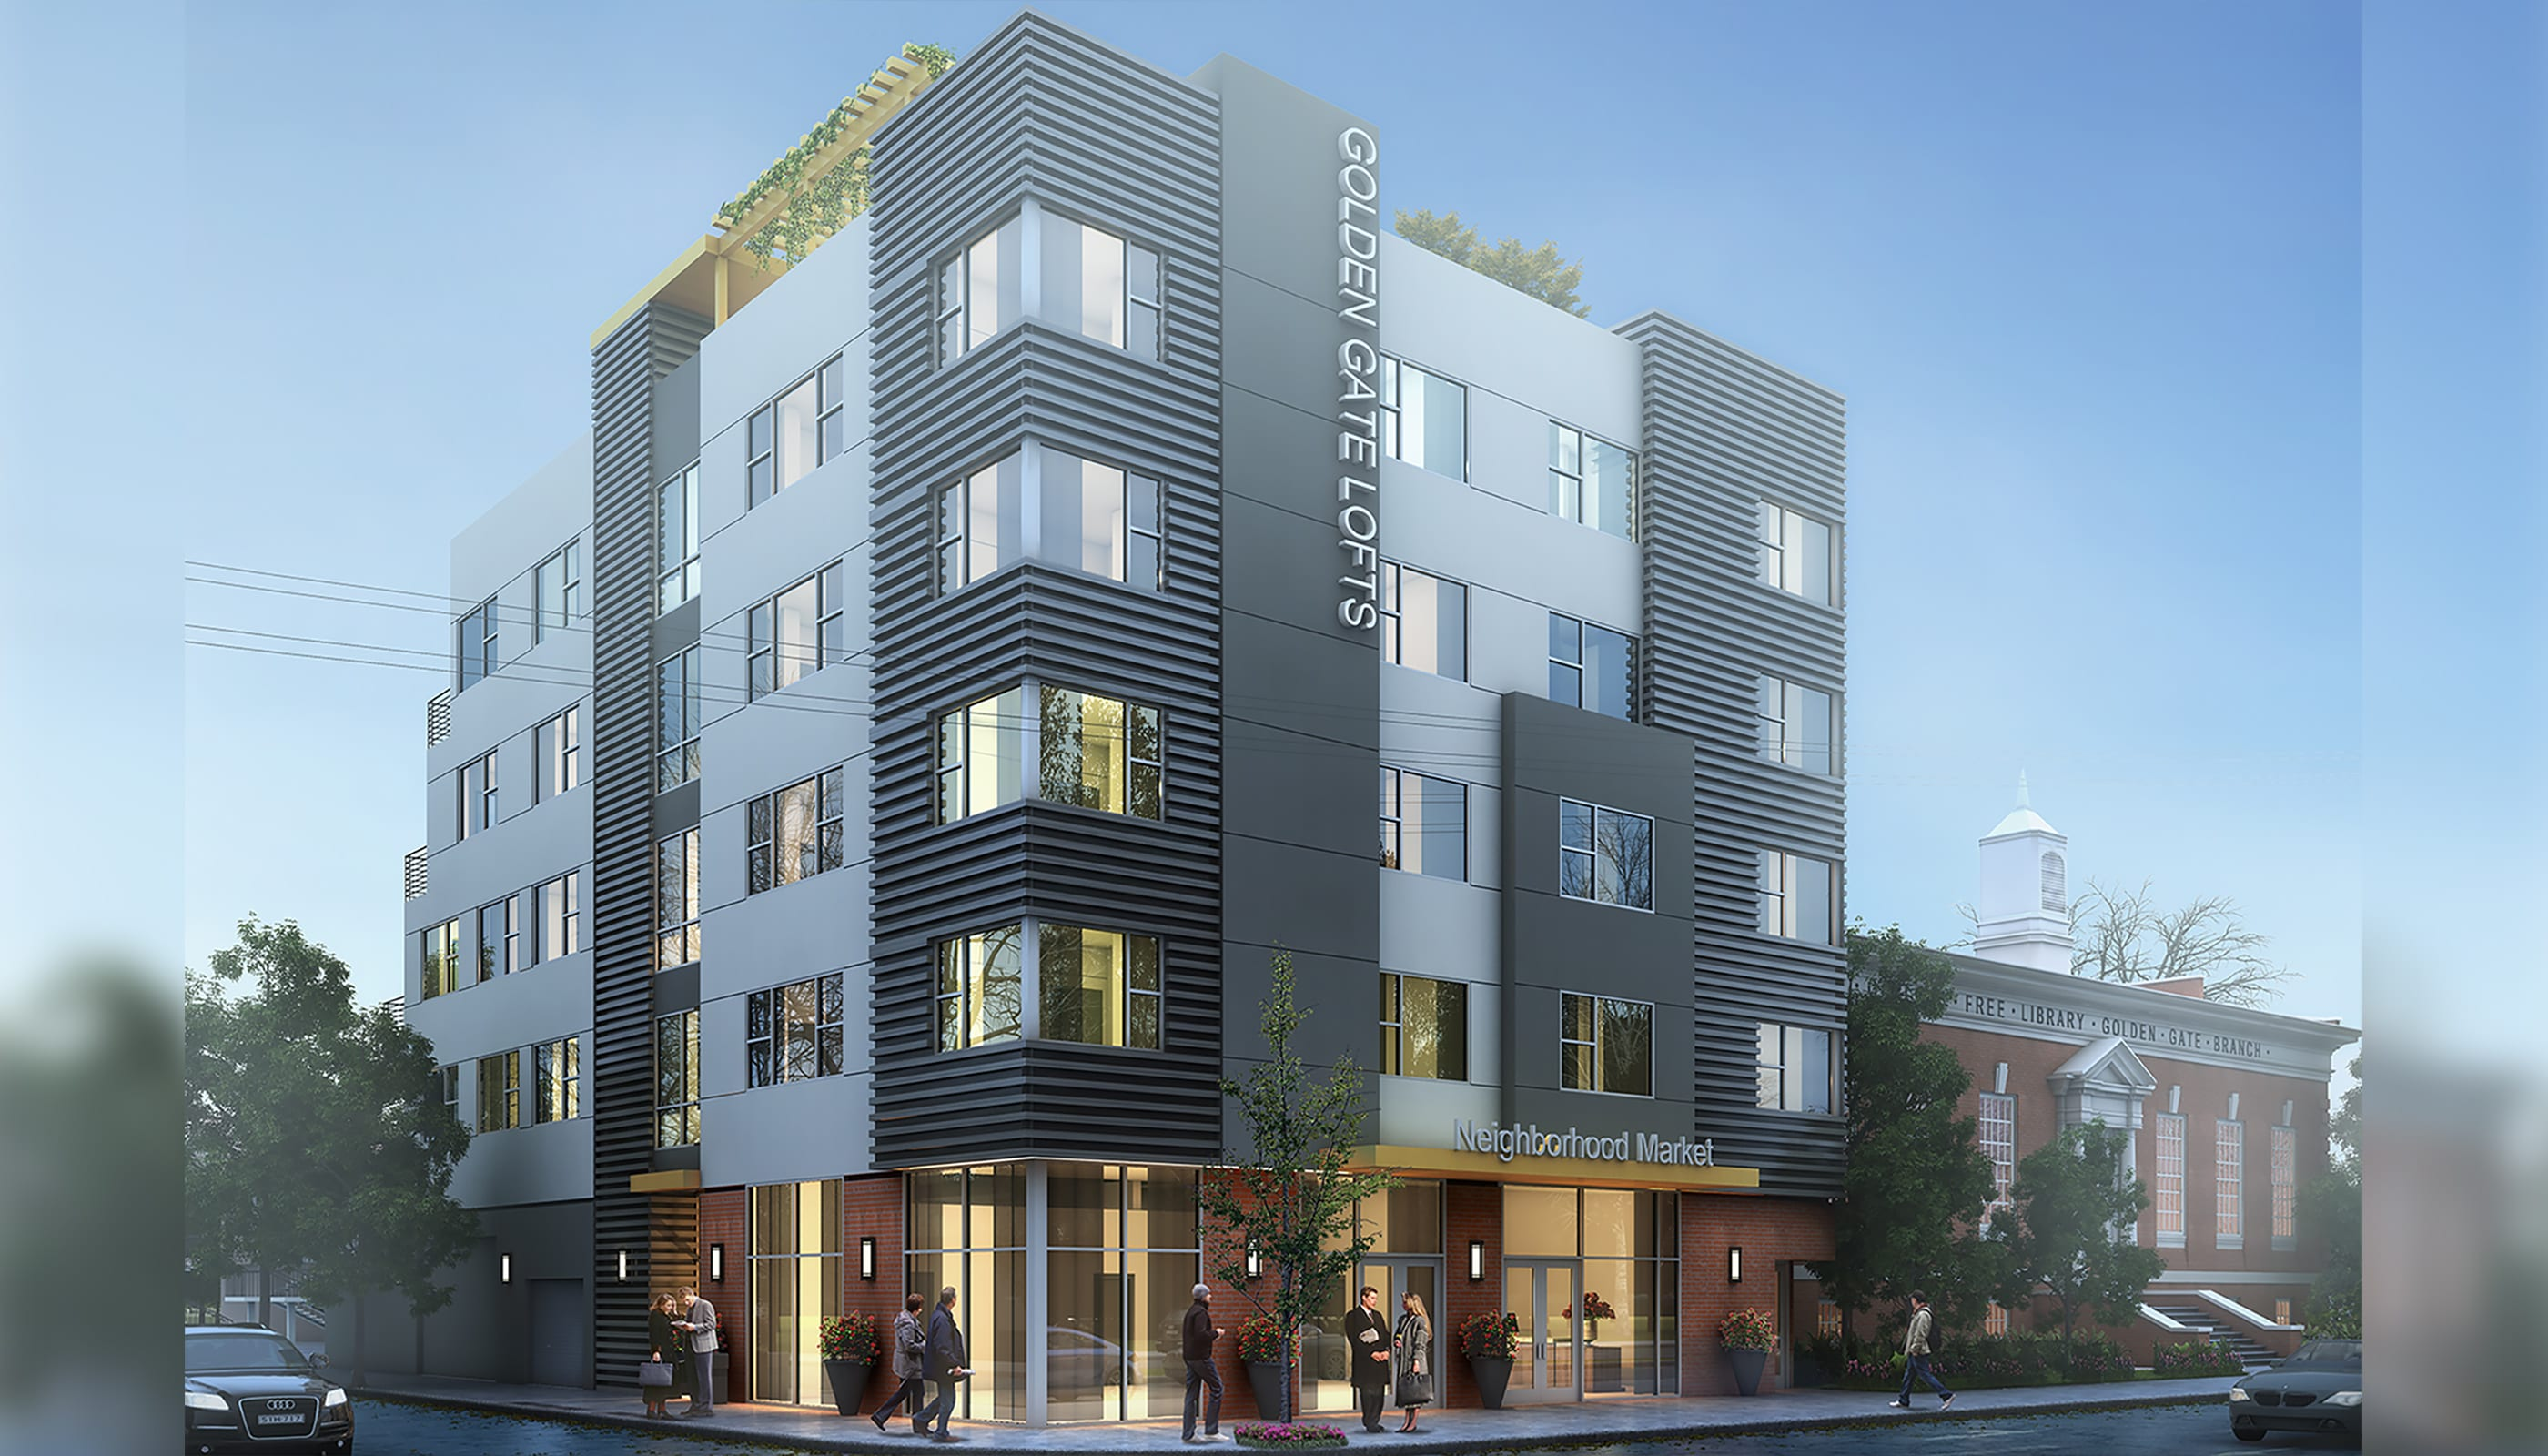 Golden Gate Lofts - Commercial Architecture